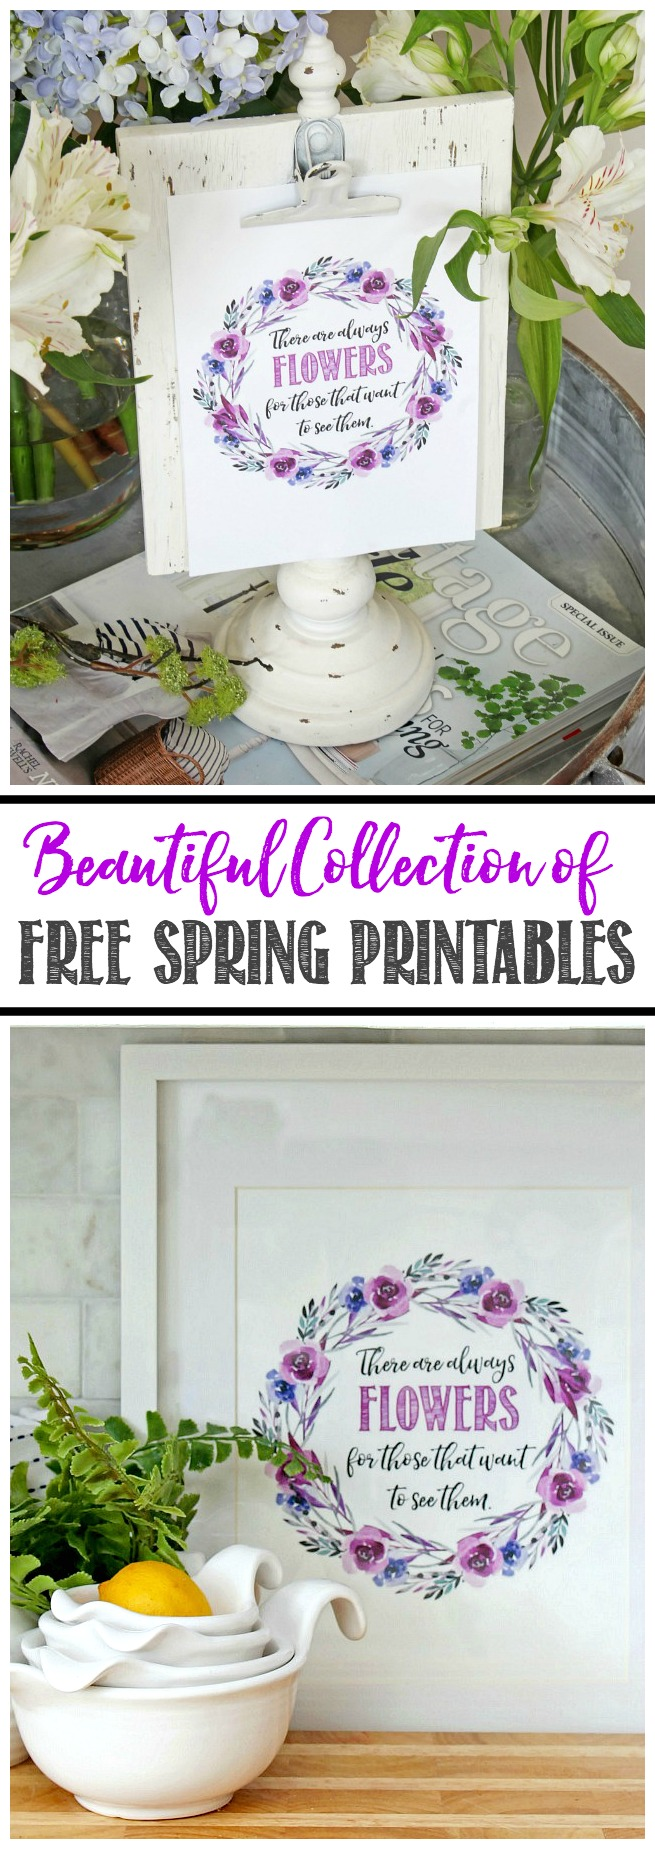 "Over 25 beautiful free spring printables including ""There are always flowers...""."